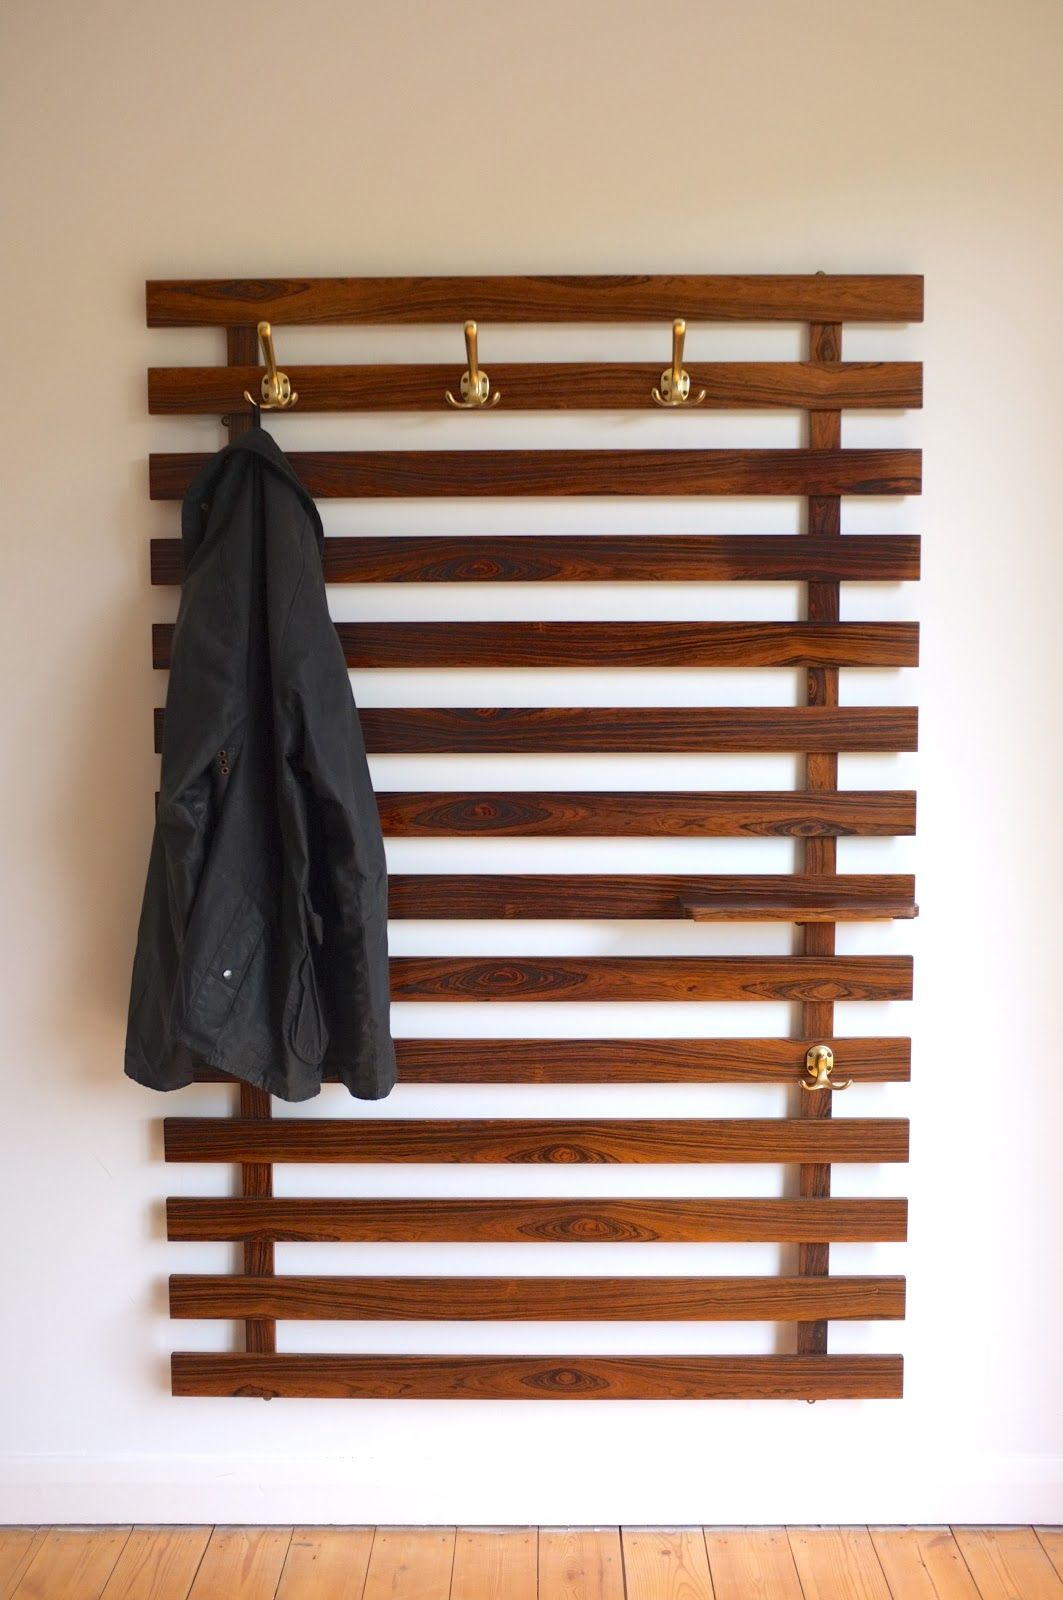 Designer Coat Racks Wall Mounted Modern Wall Mounted Coat Rack Ideas To Impress You Mid